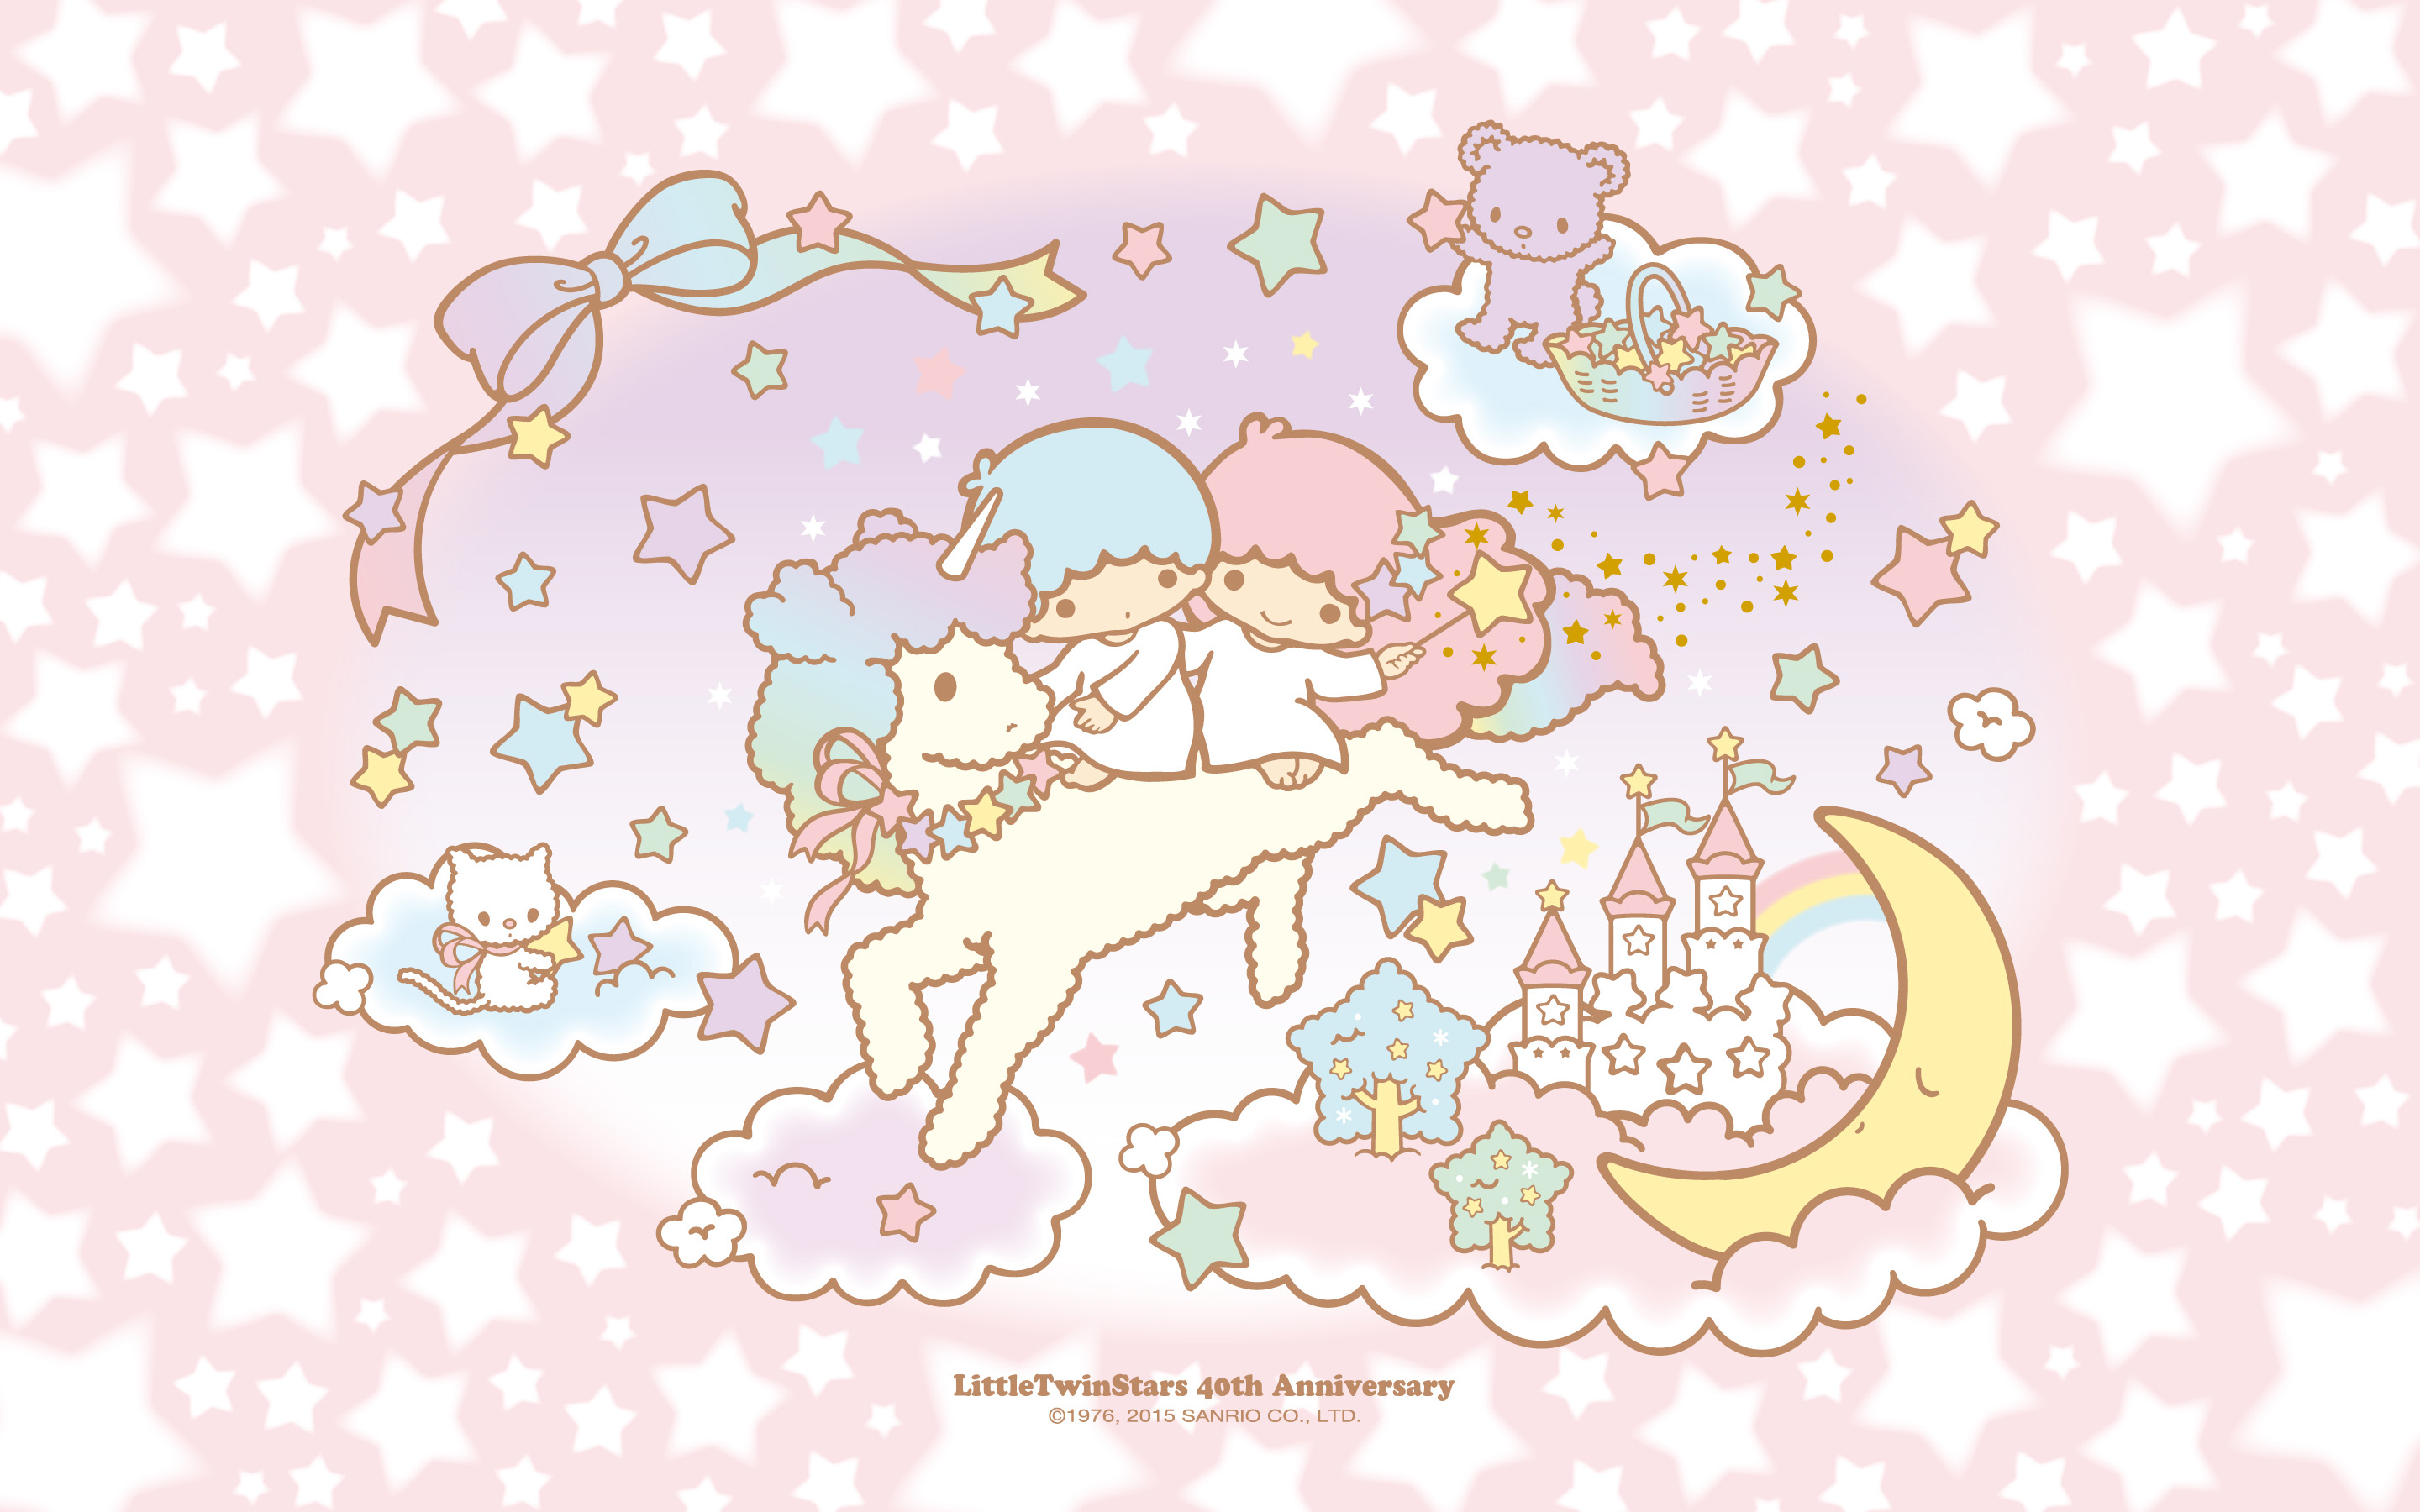 little twin stars wallpaper iphone 4